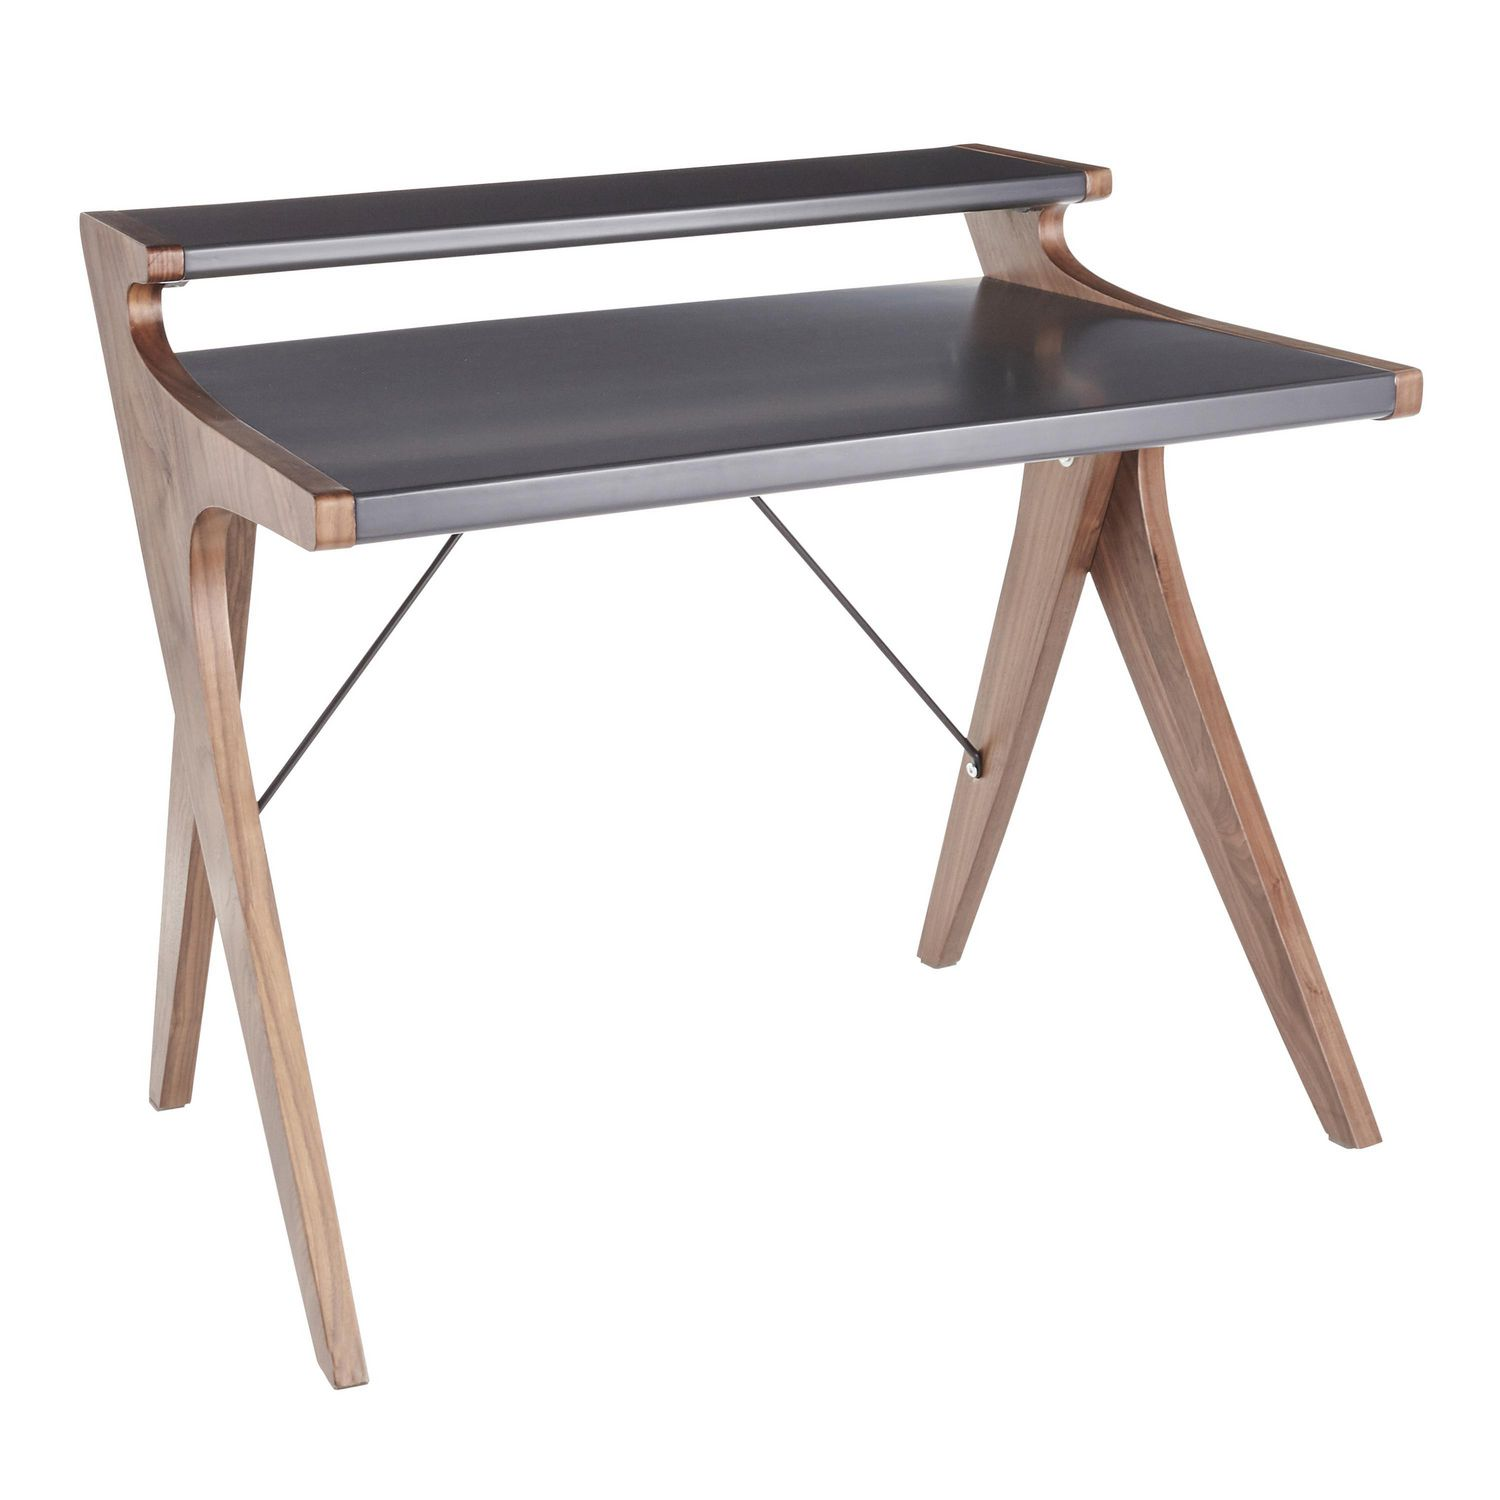 Image of: Archer Mid Century Modern Desk By Lumisource Walmart Canada